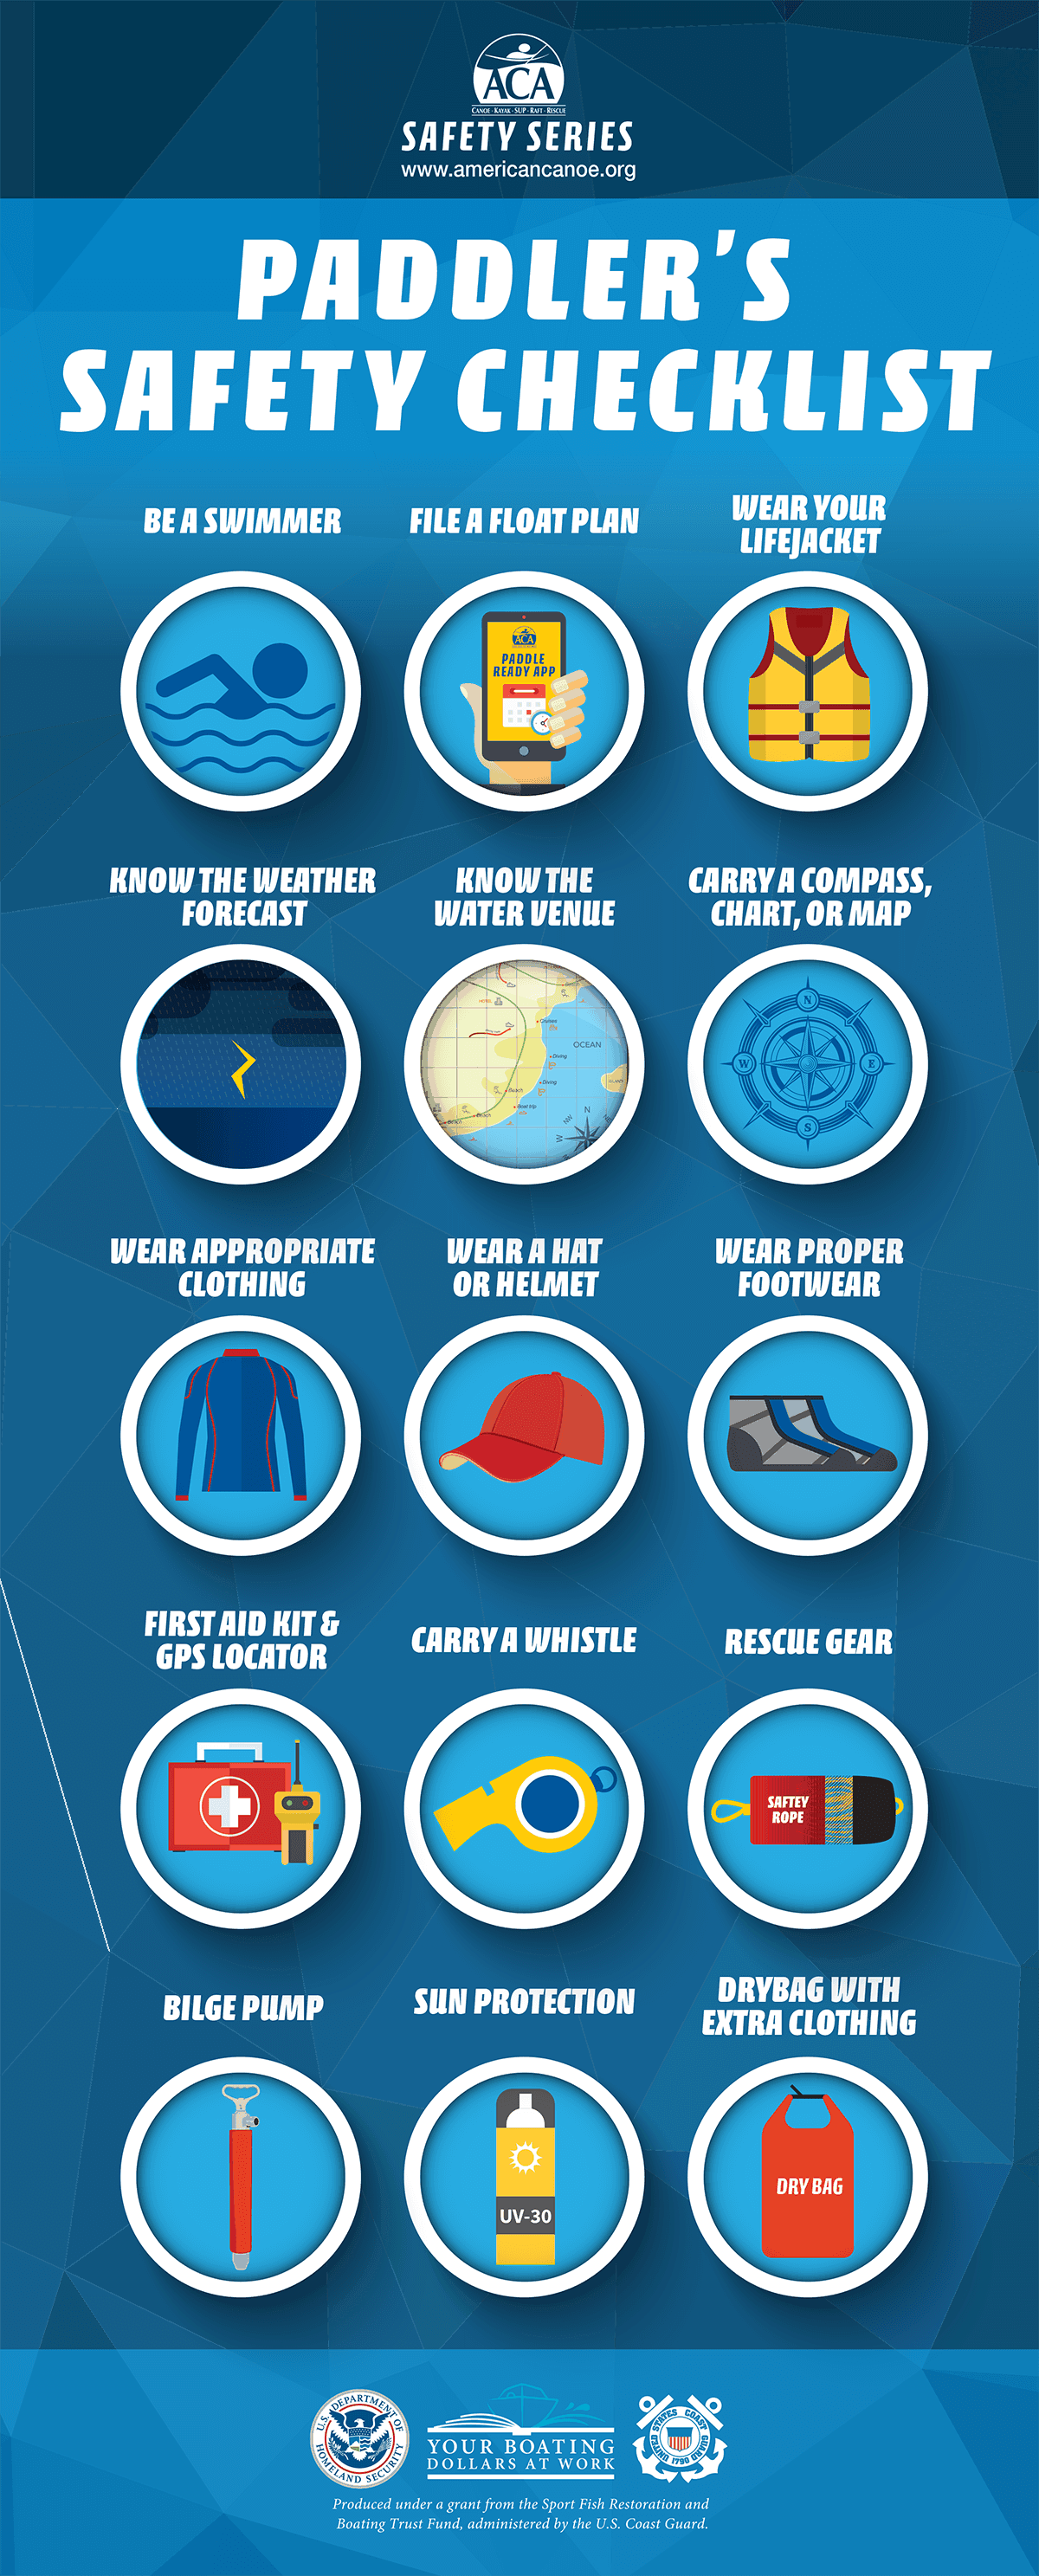 Paddler's Safety Checklist Infographic